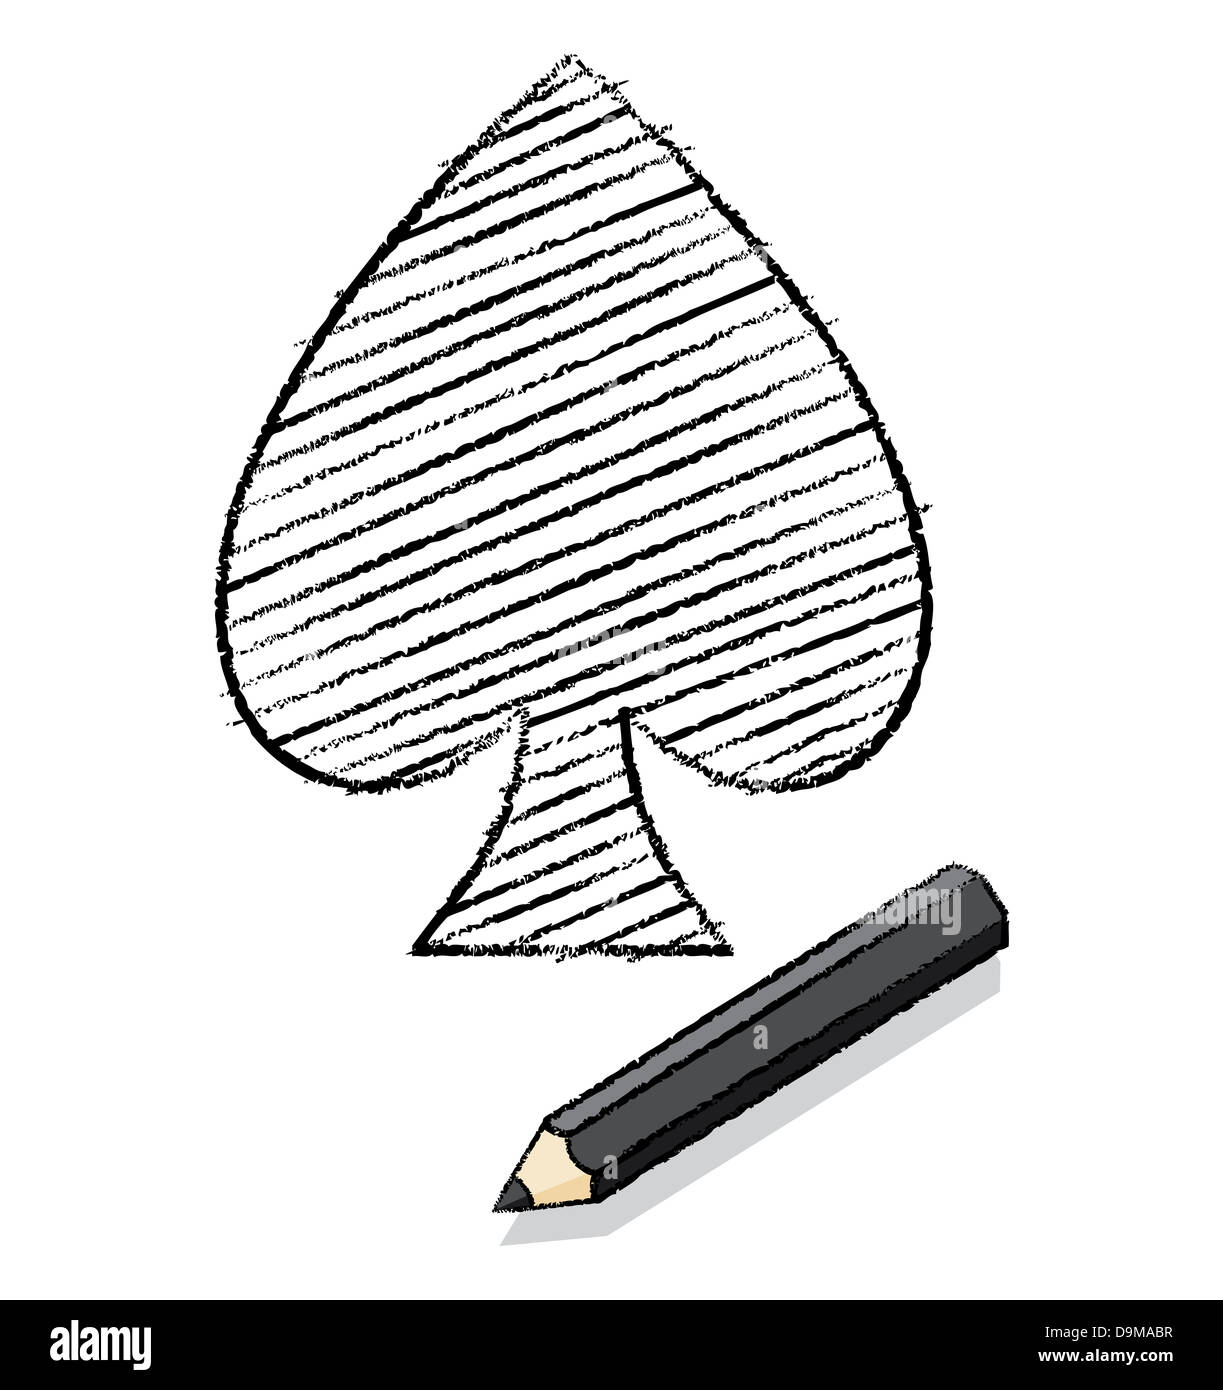 Ace of spades playing card icon drawn by a black pencil with